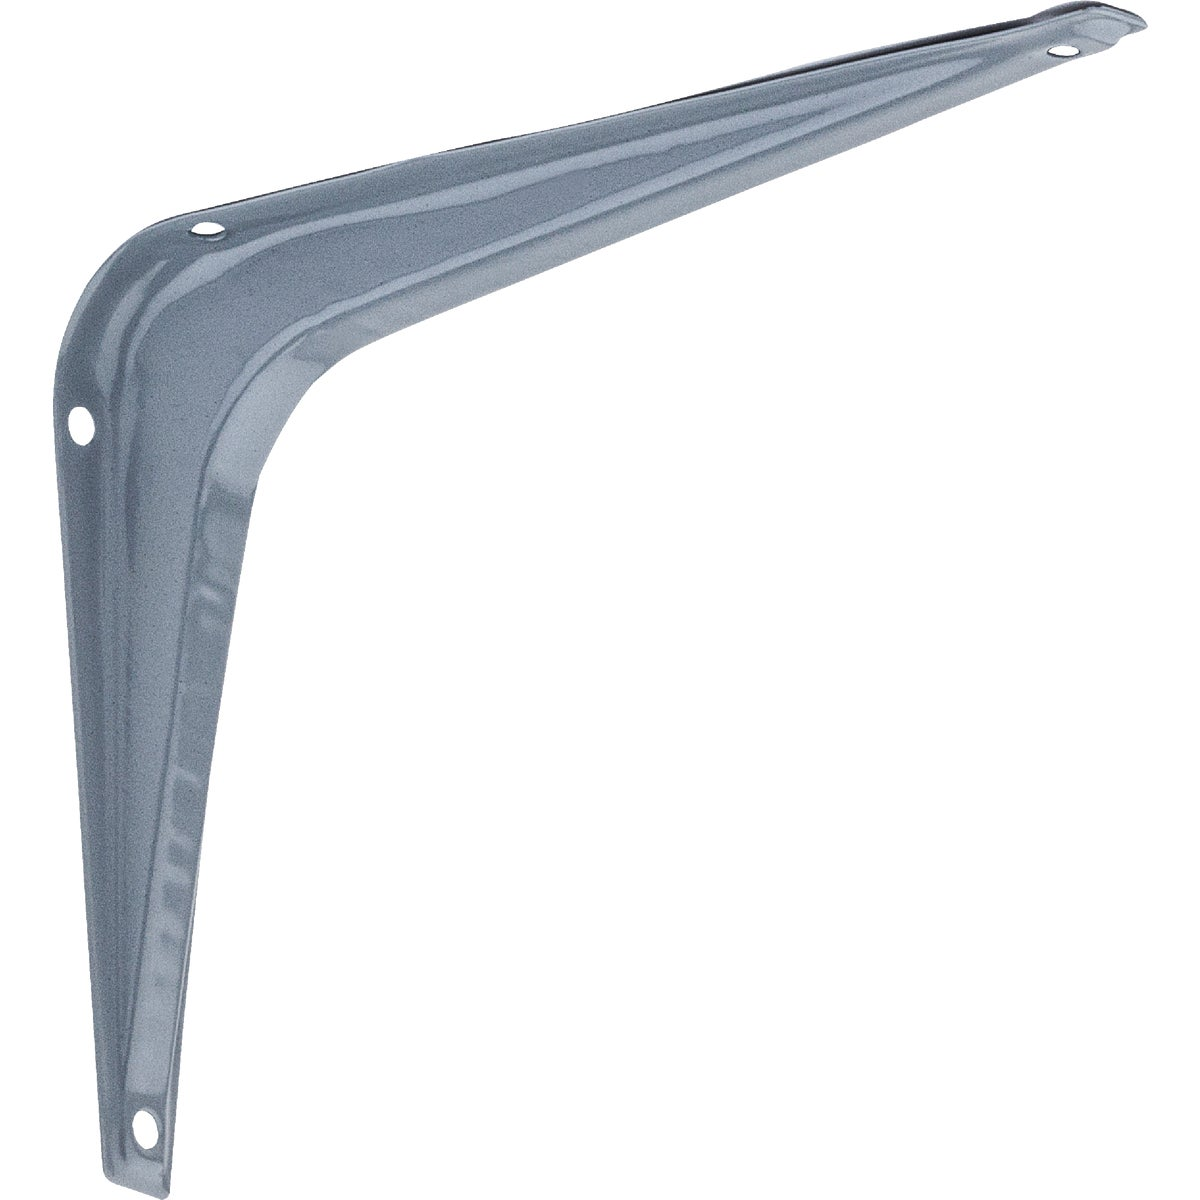 4X6 GRAY SHELF BRACKET - N172601 by National Mfg Co